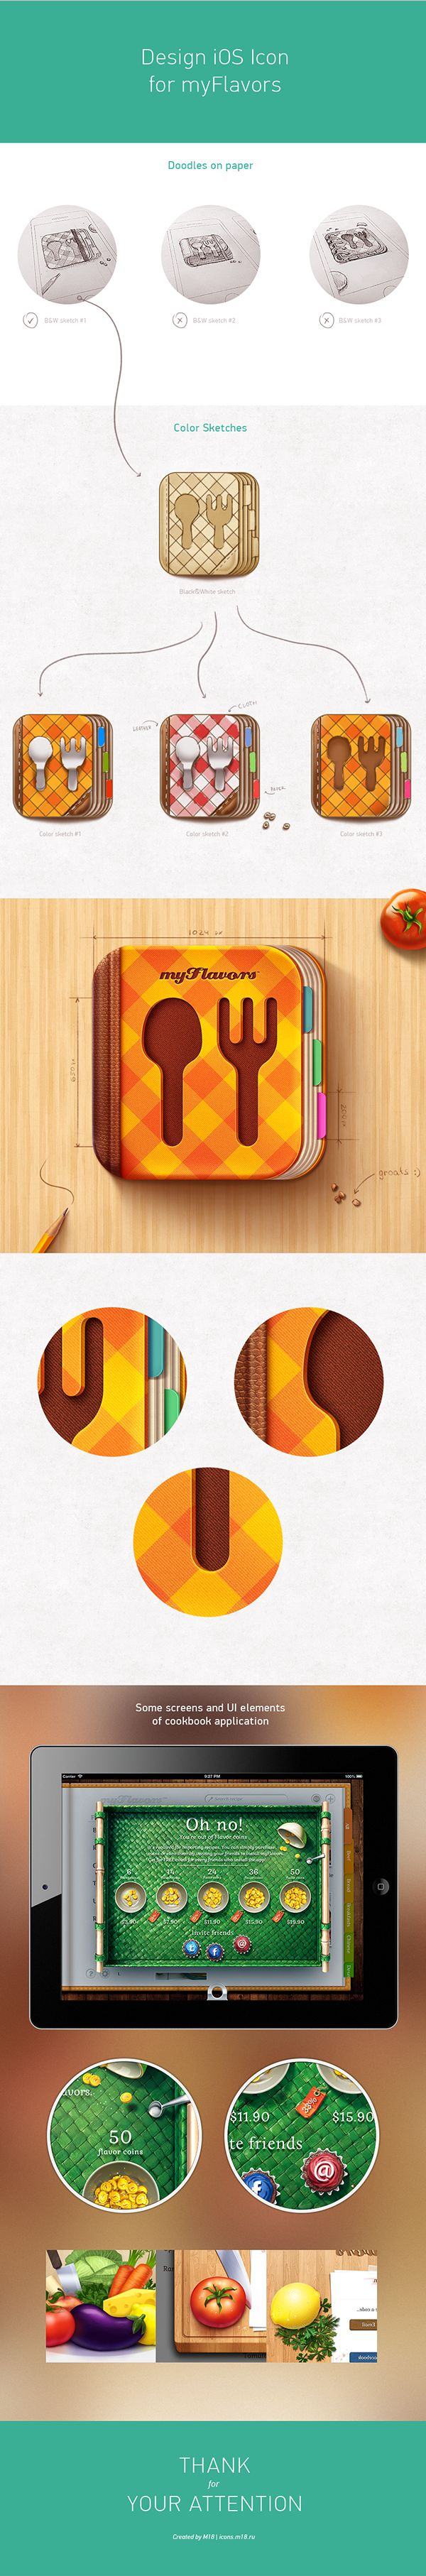 iOS Icon for Cook Book app on Behance